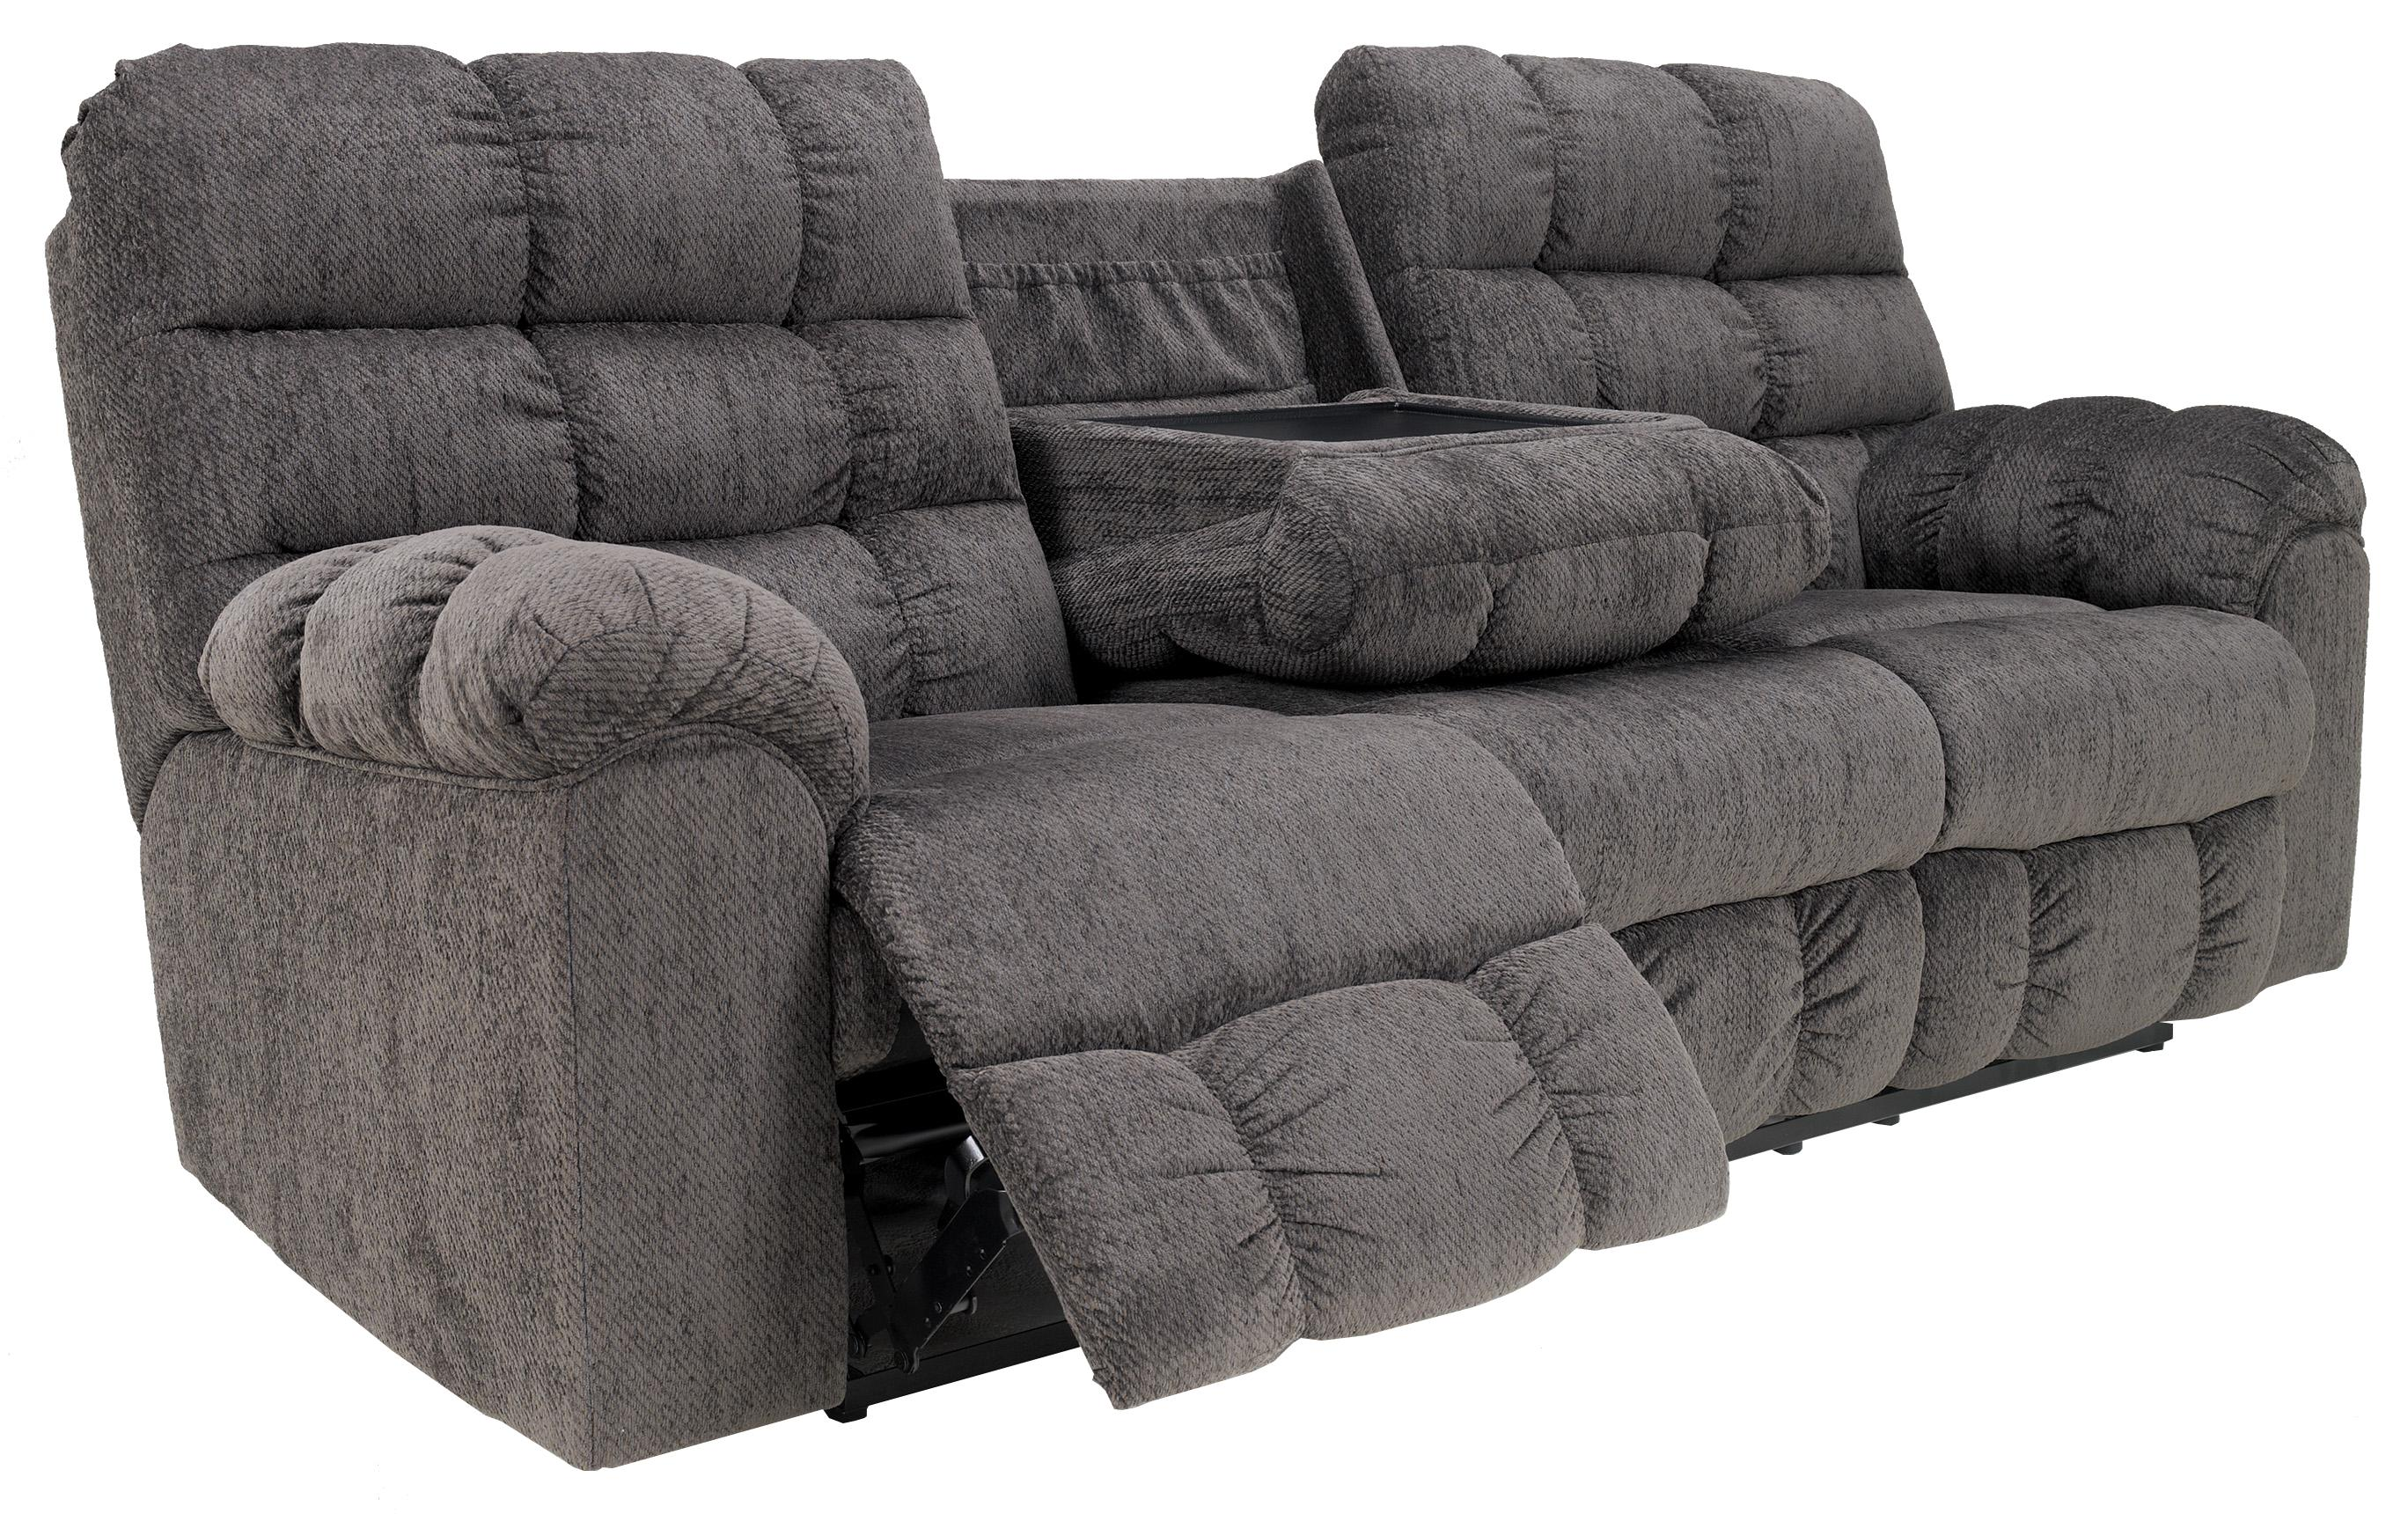 Reclining Sofa With Drop Down Table And Cup Holders By Signature Design By Ashley Wolf And